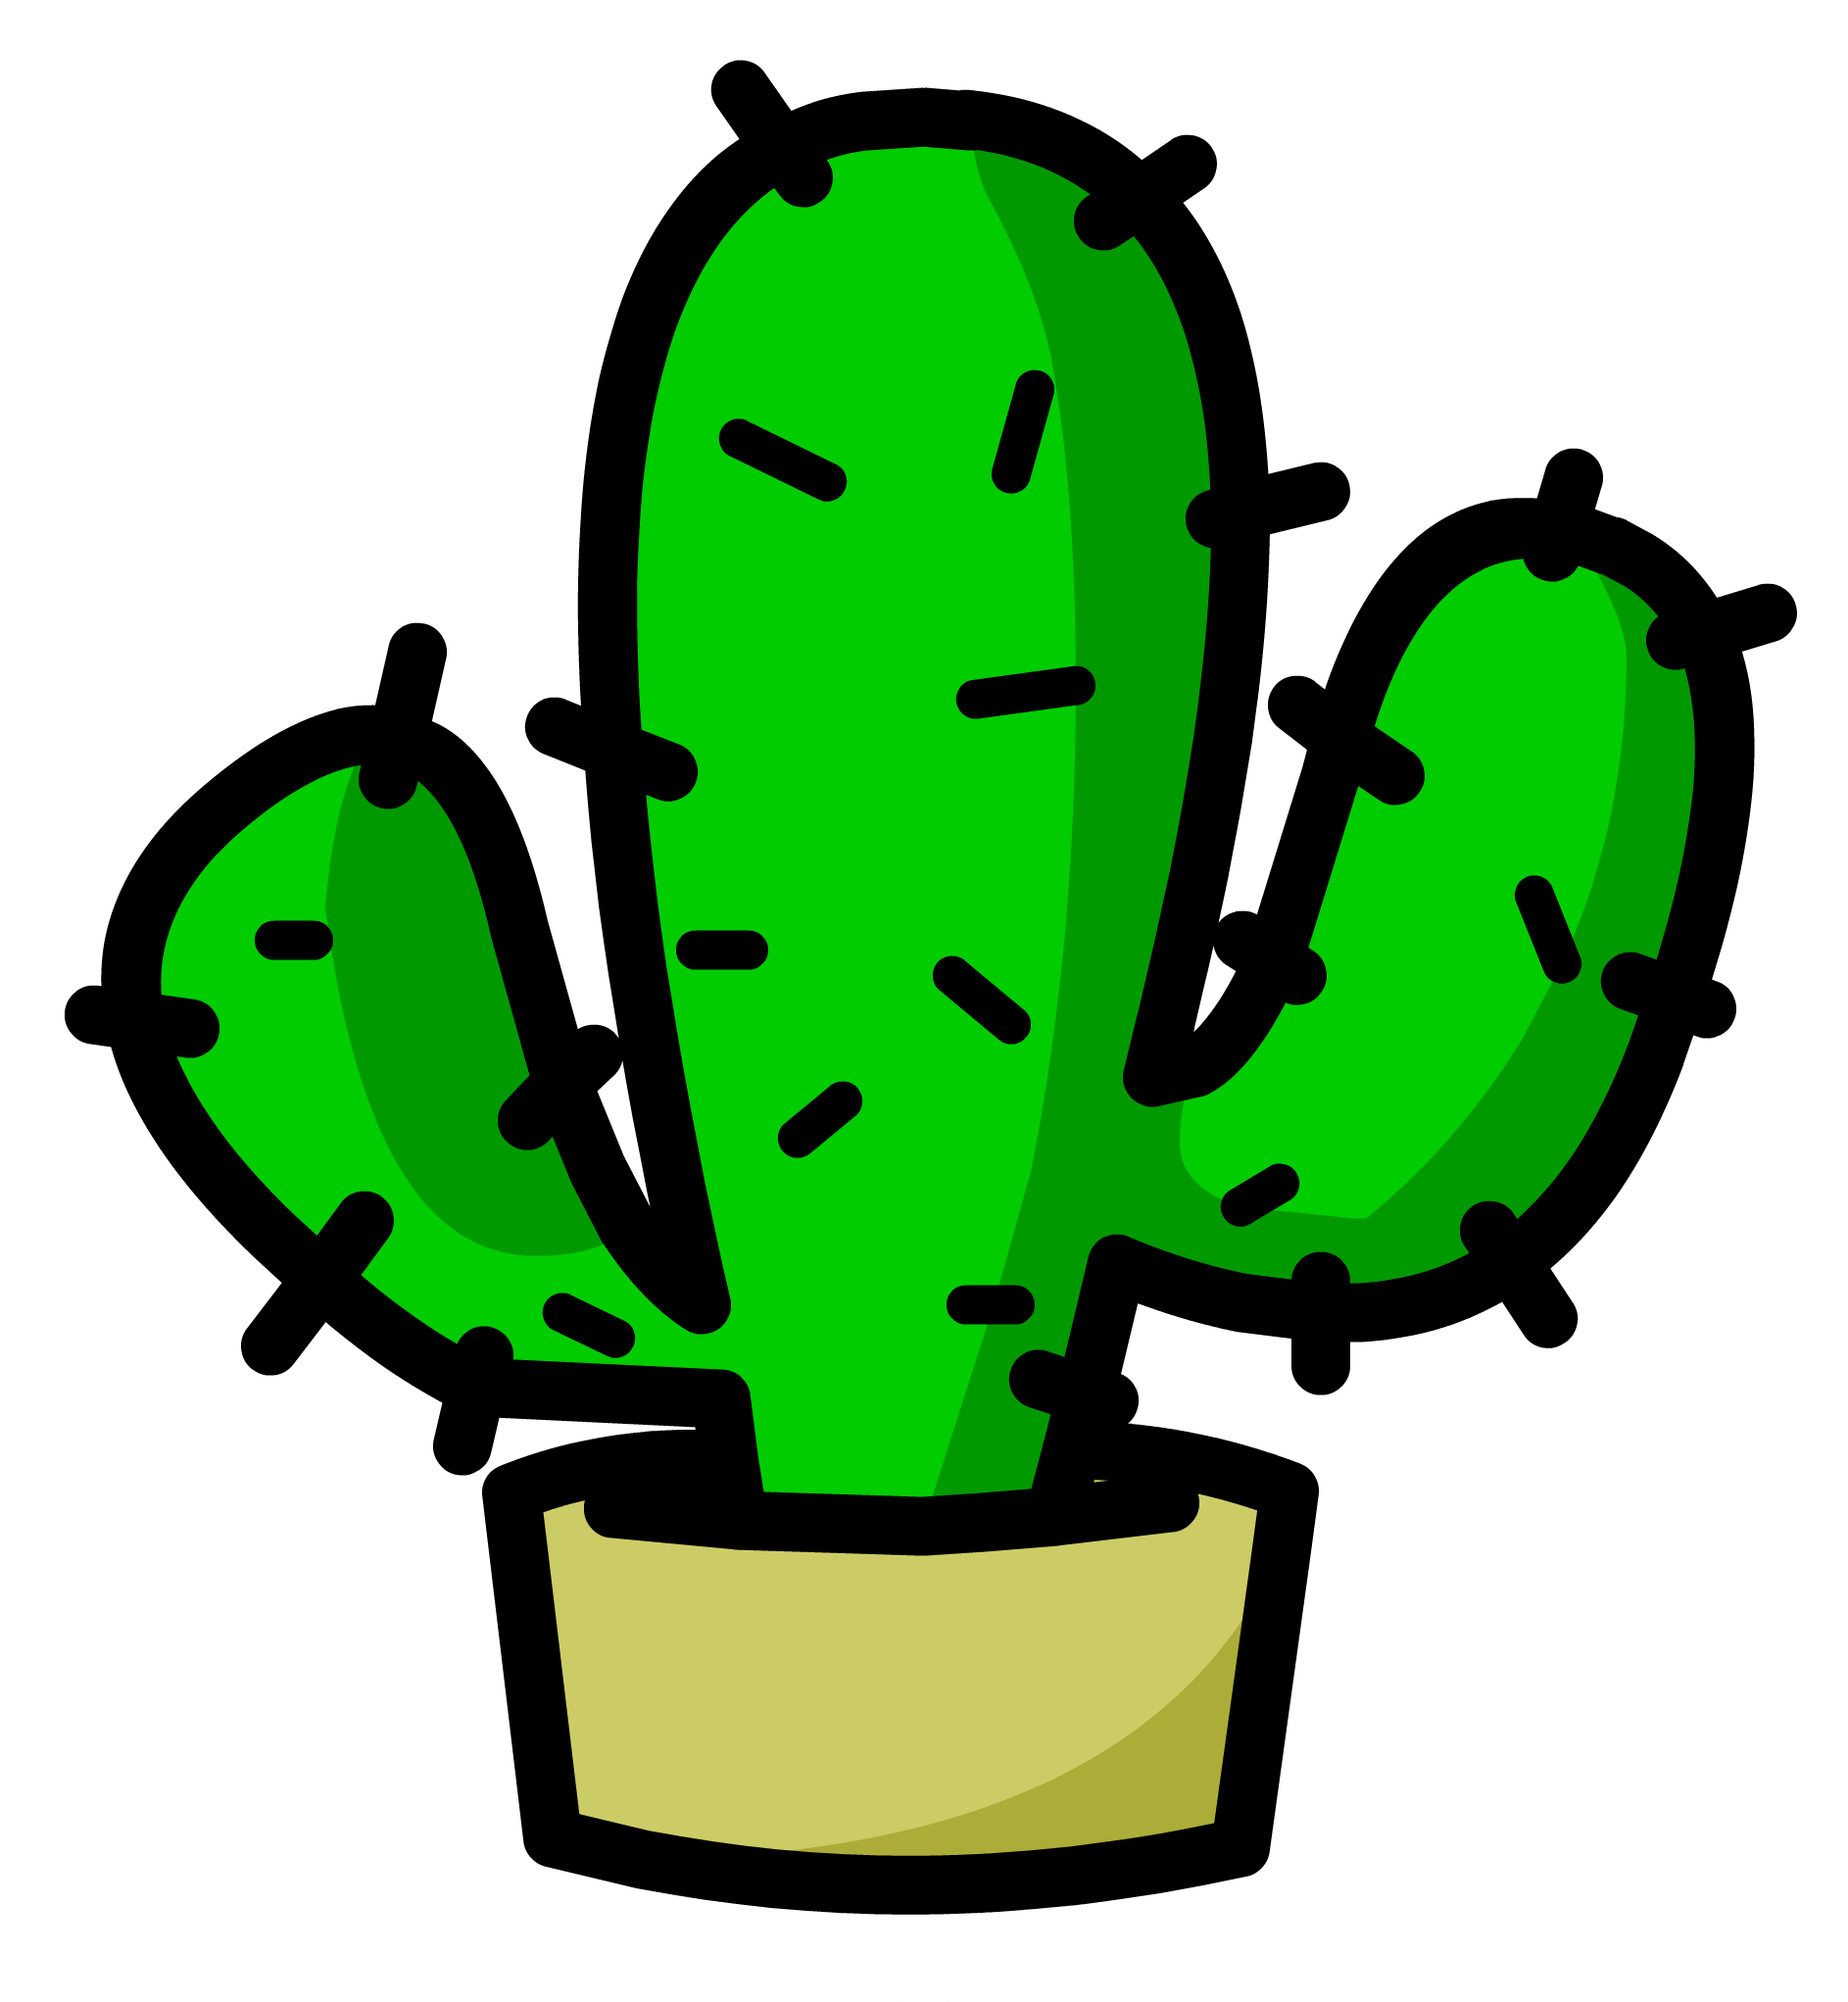 Christmas cactus clipart graphic Cactus Transparent PNG Image | Web Icons PNG graphic